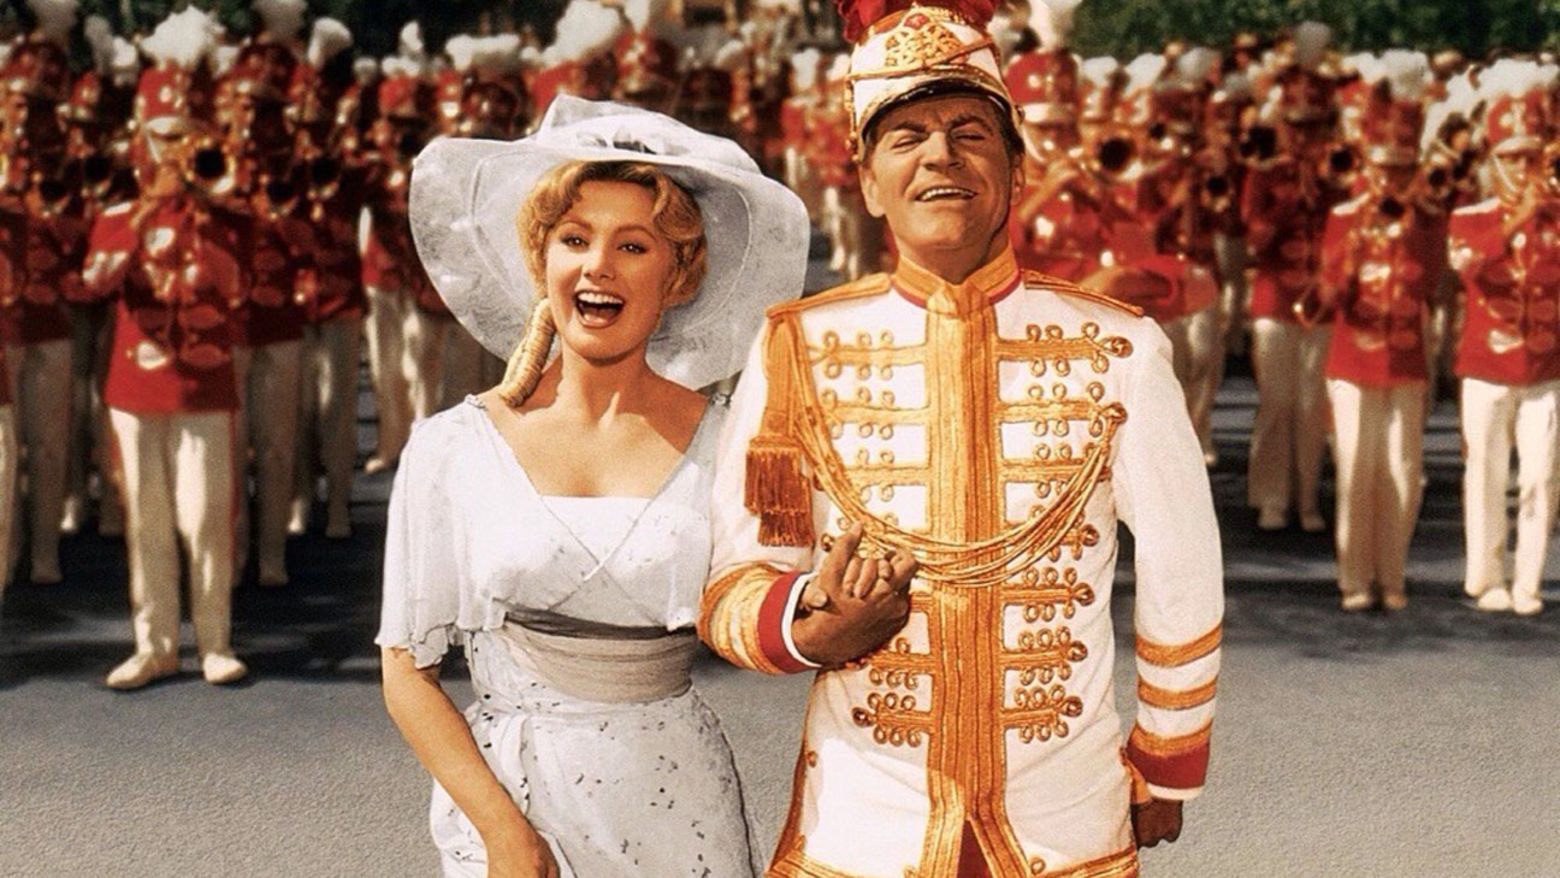 Film still from The Music Man (1962)